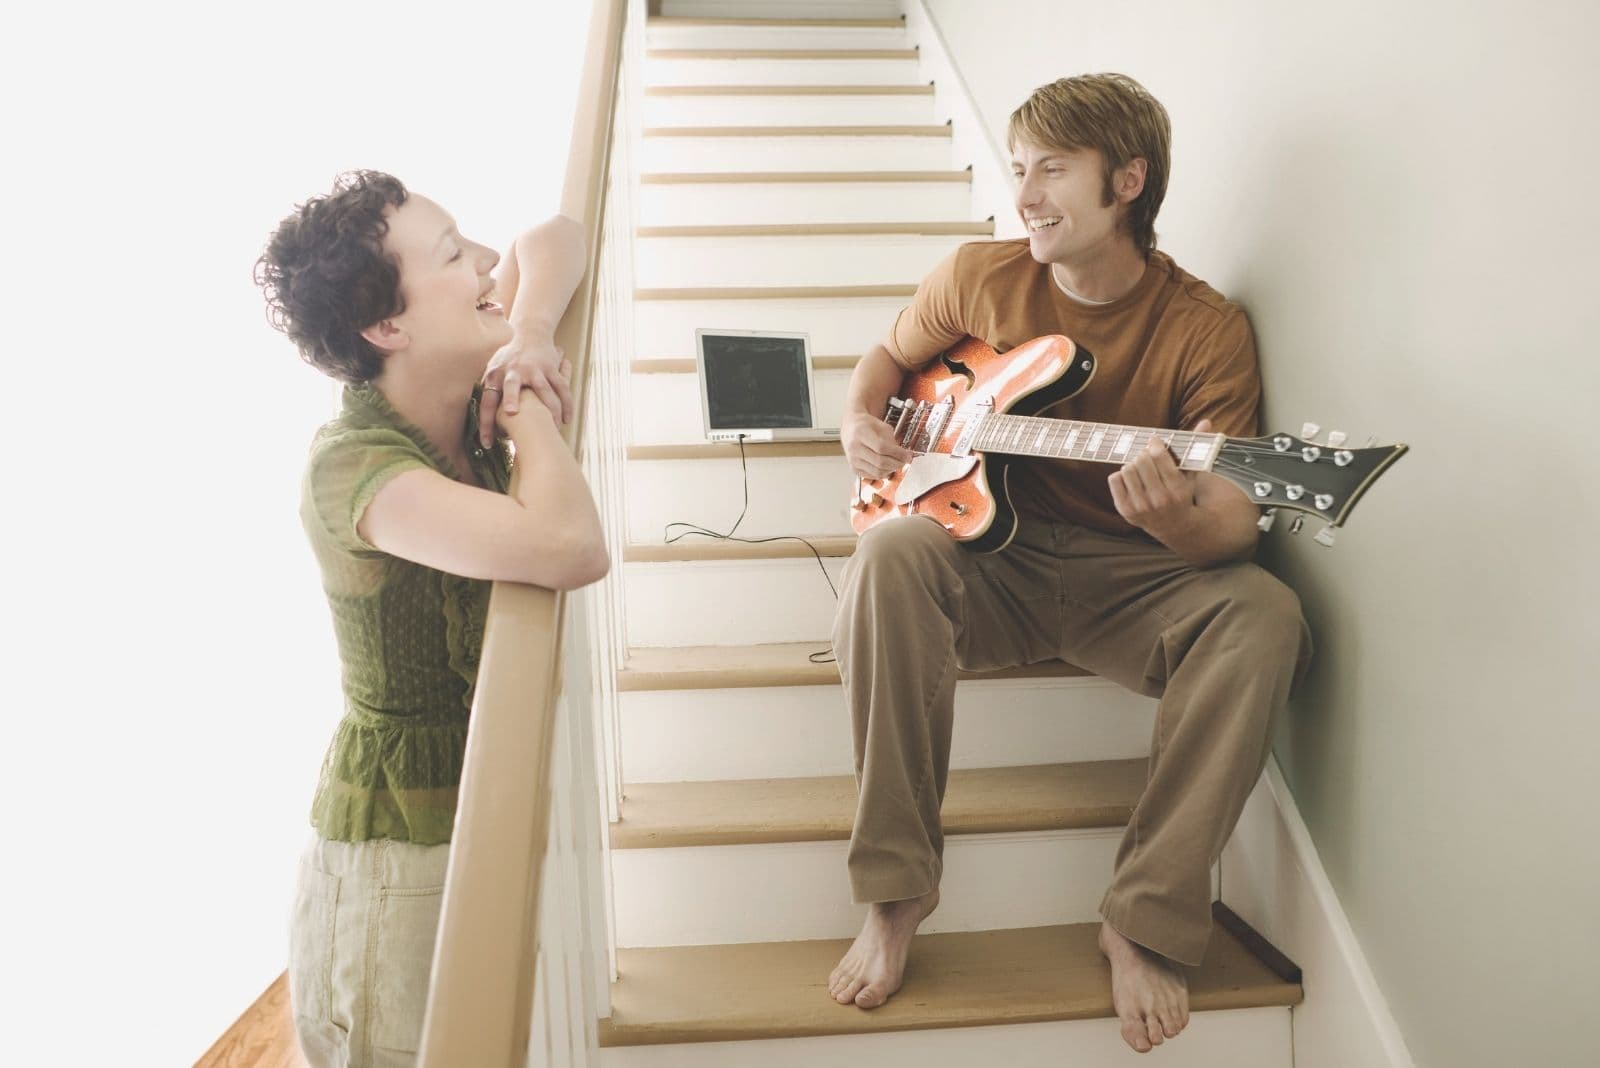 man playing guitar and sitting in the stairs while talking to the woman laughing